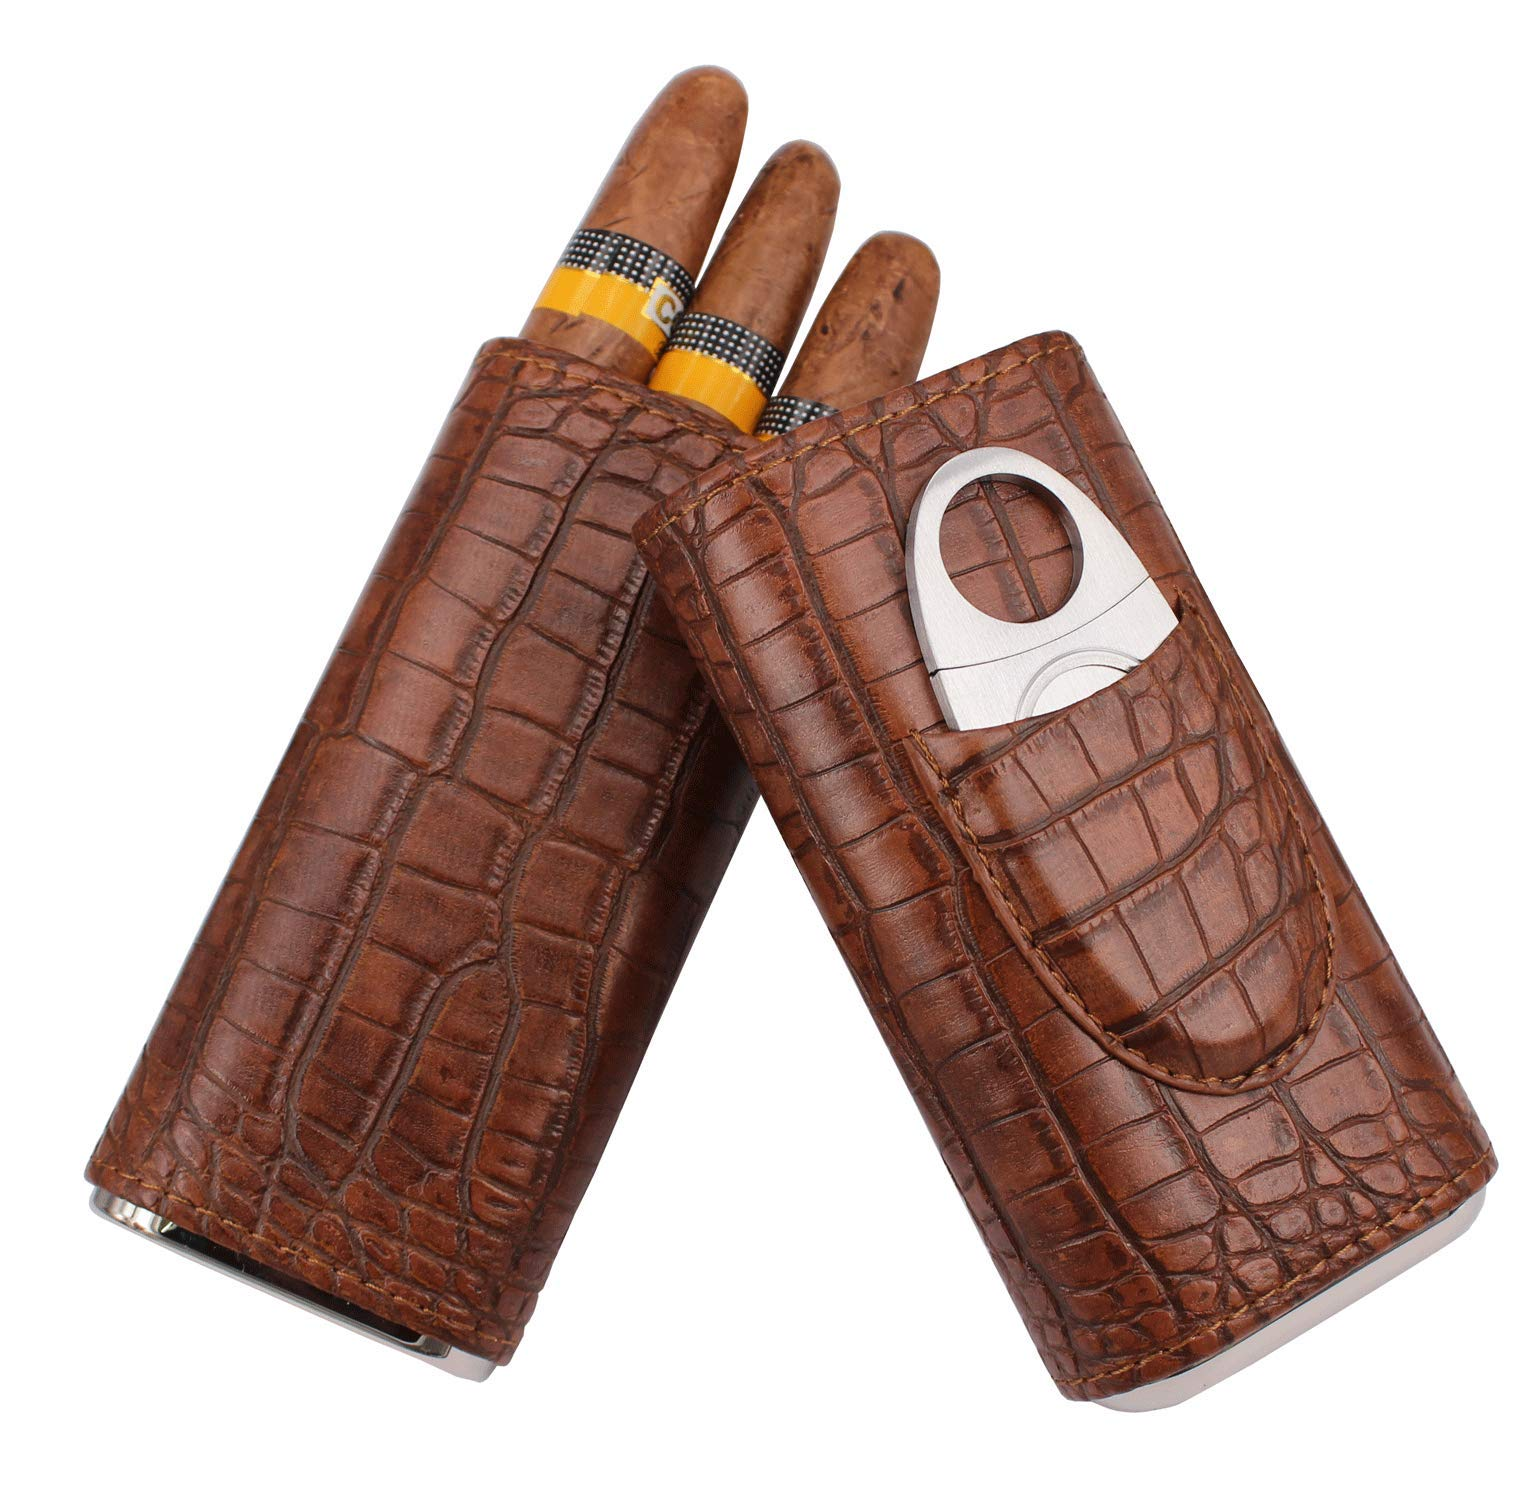 AMANCY 3 Holder Classic Vintage Crocodile Pattern Leather Cigar Case with Cedar Wood Lined